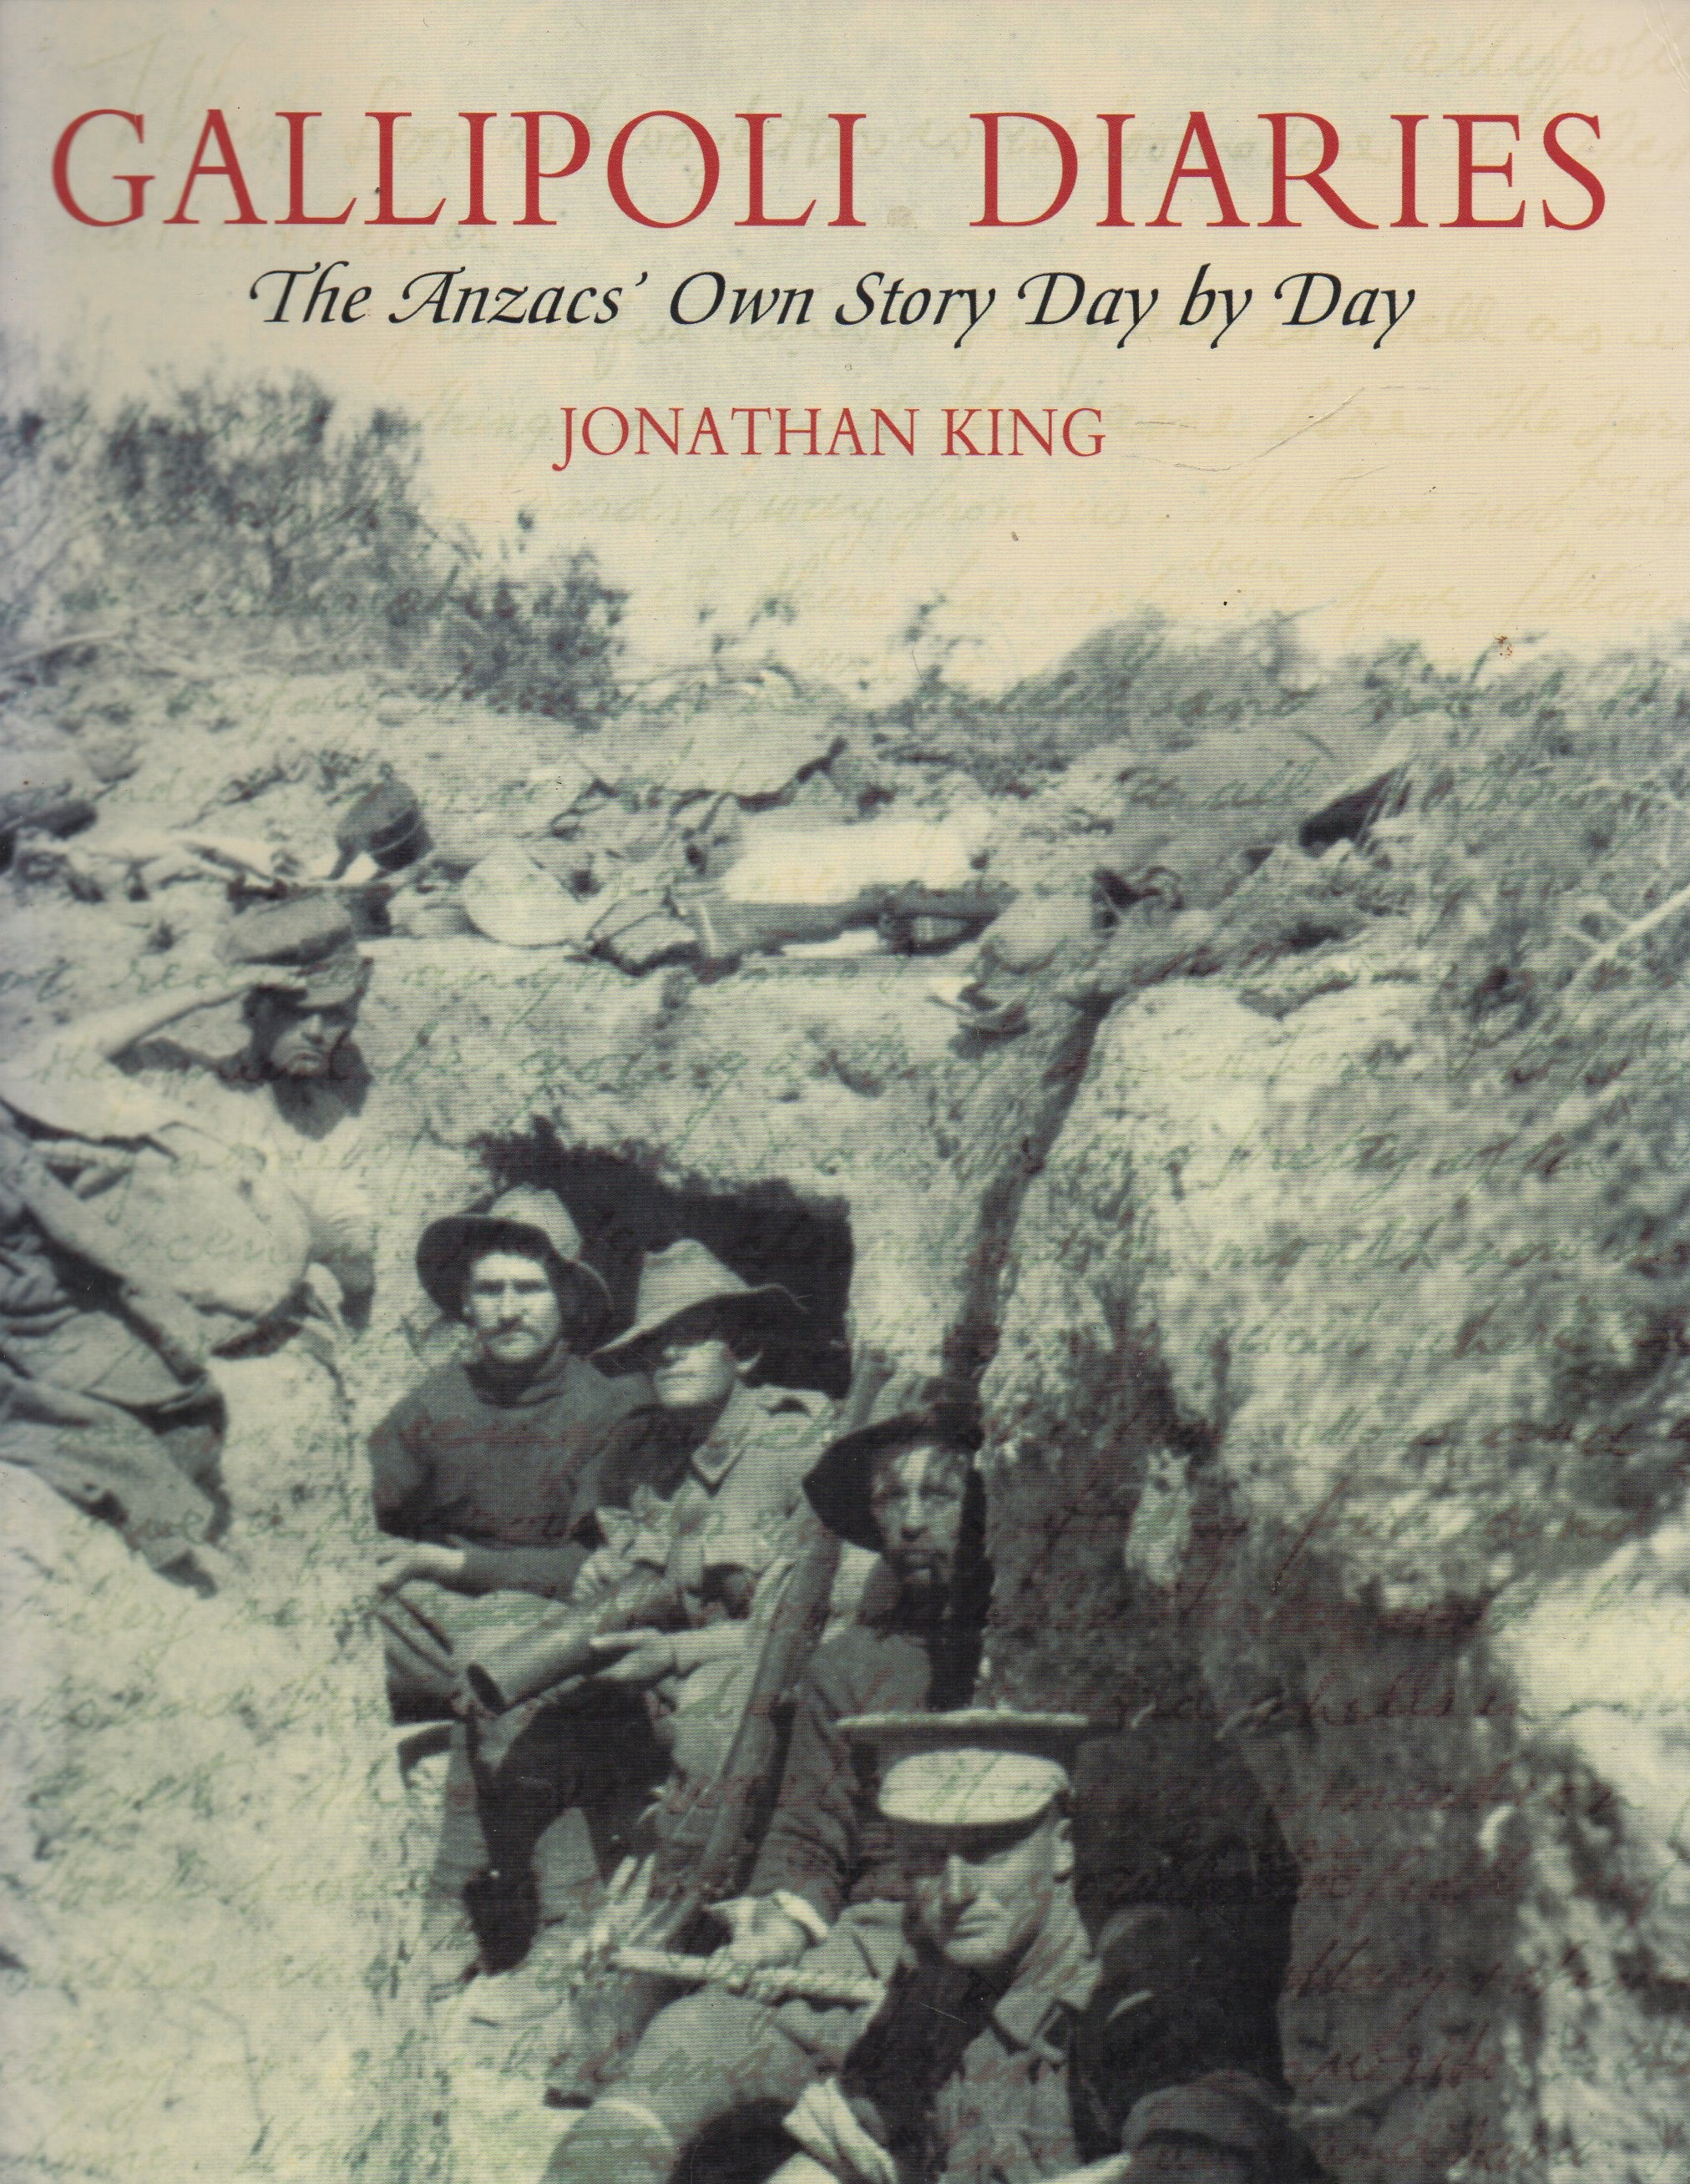 KING, JONATHAN - Gallipoli Diaries  The Anzacs' Own Story Day by Day